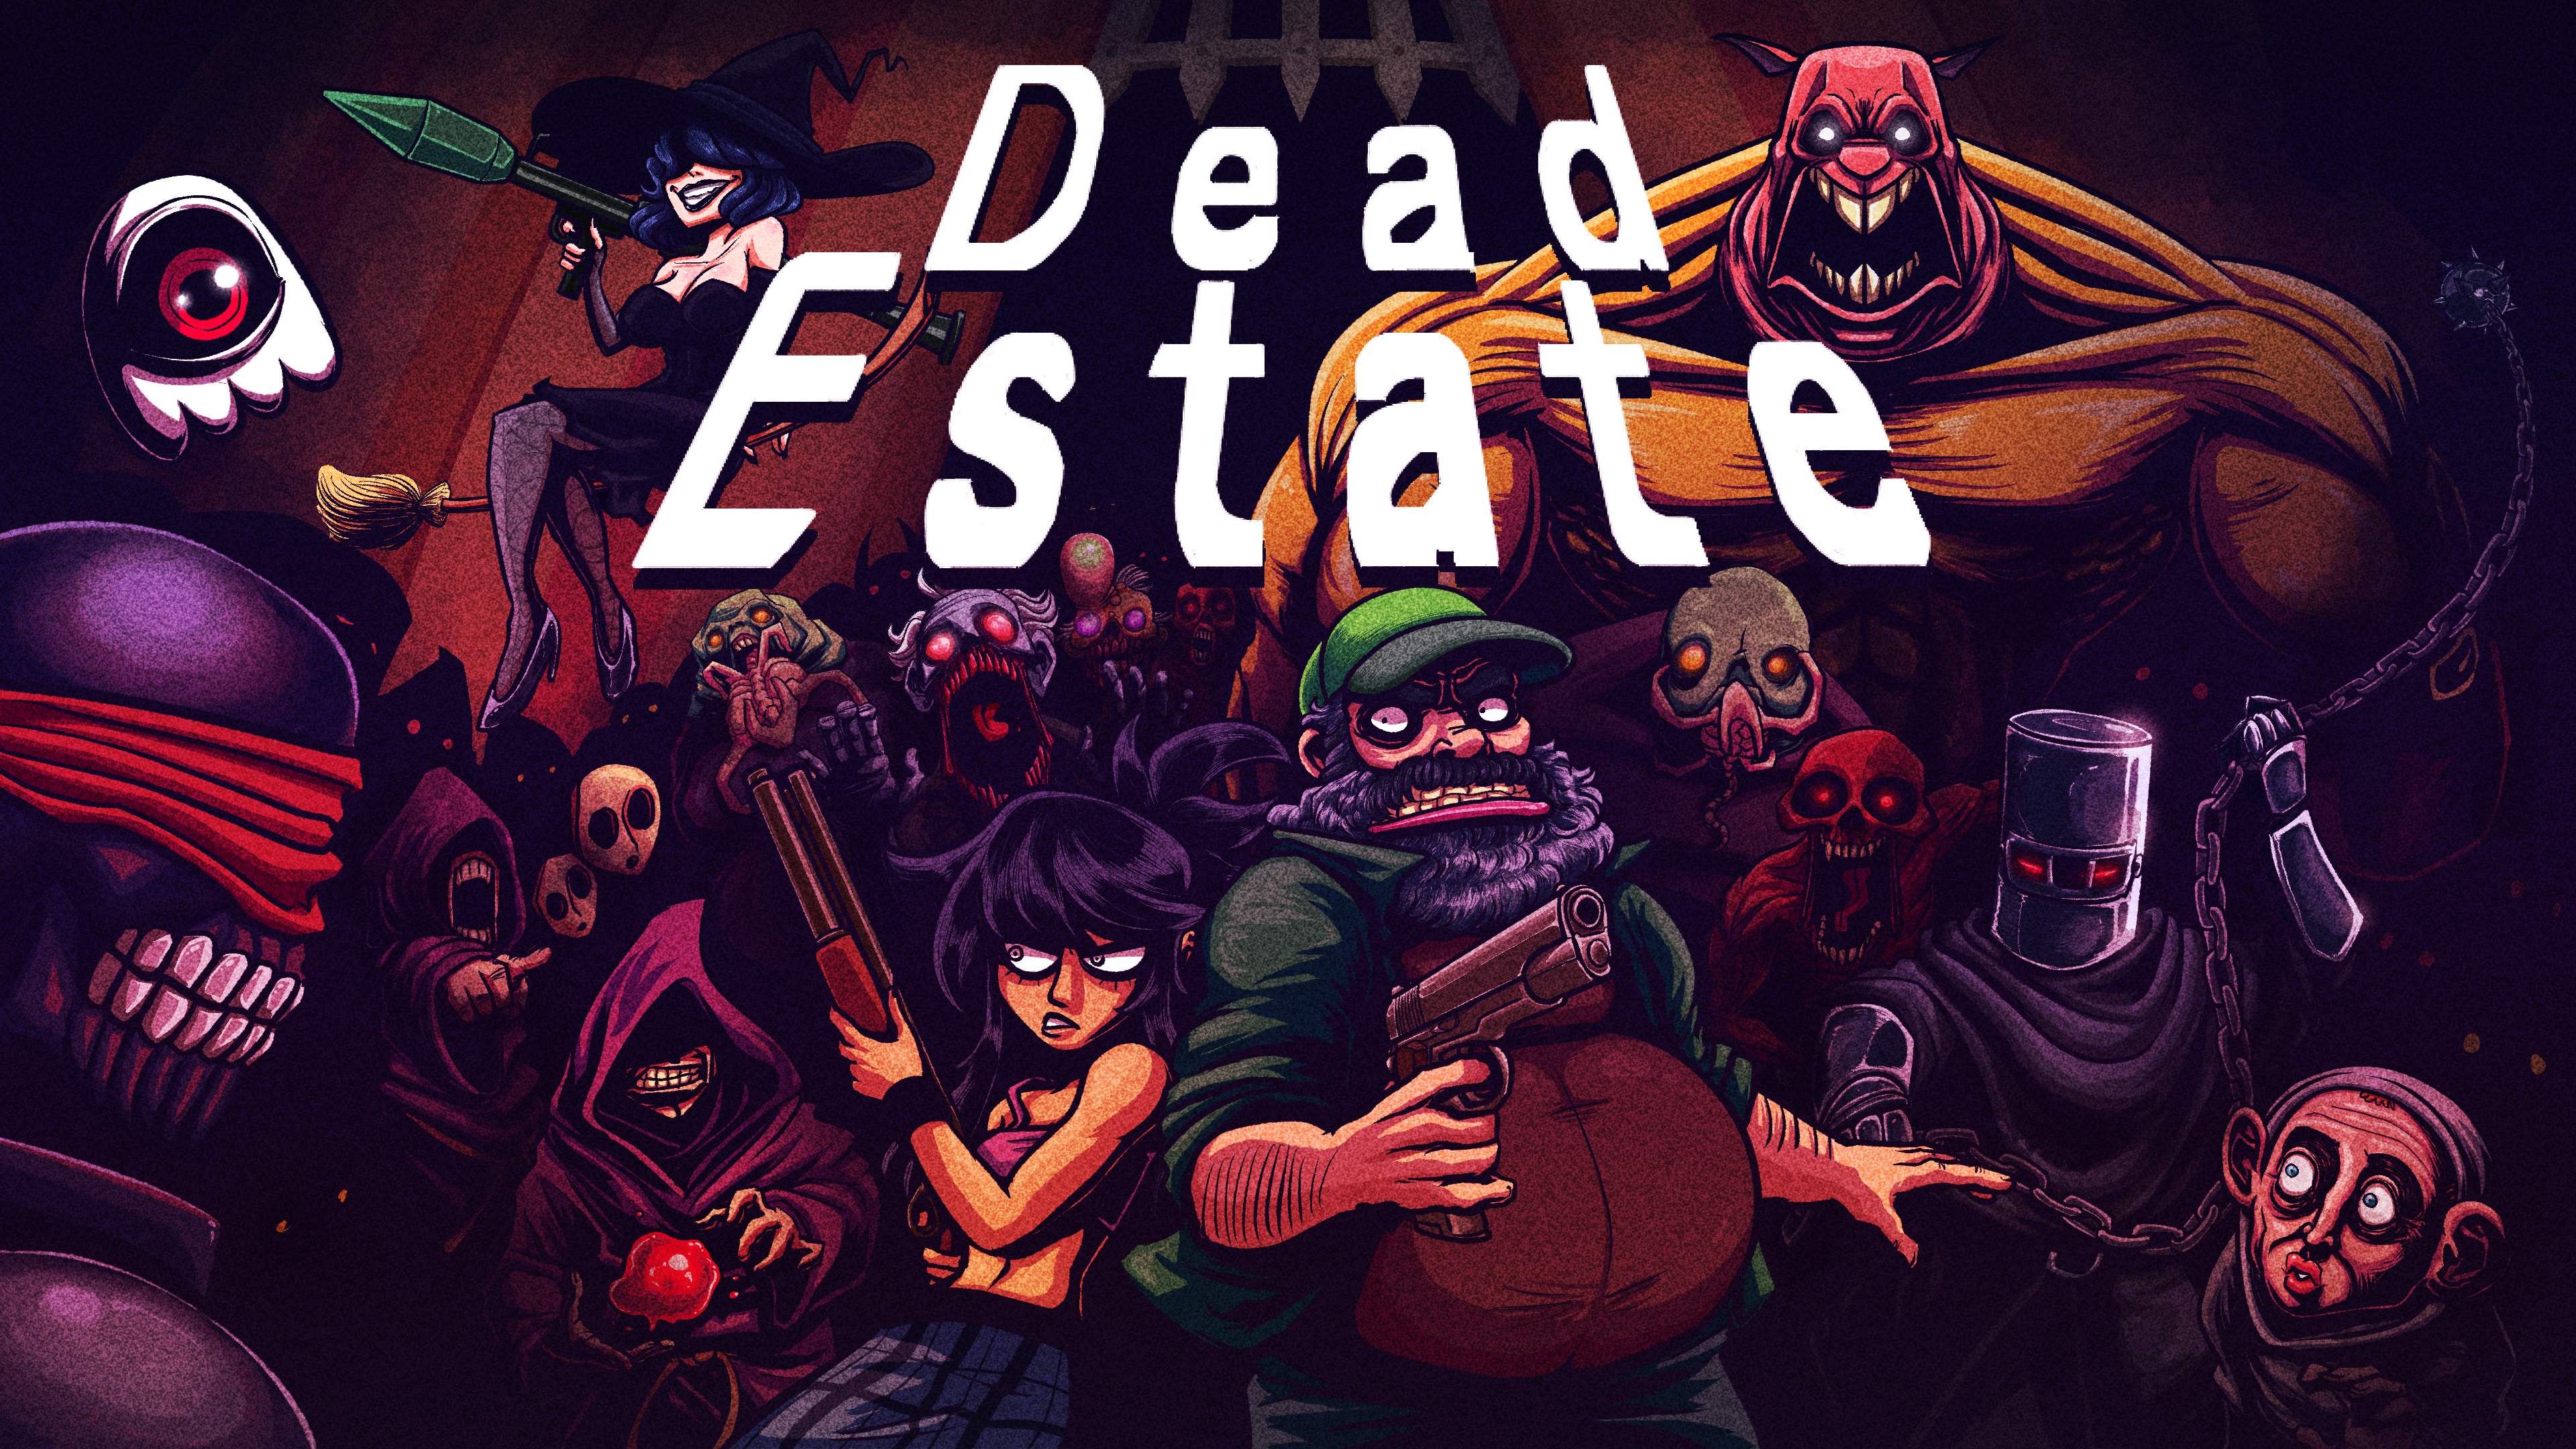 DEAD ESTATE BUT ON STEAM